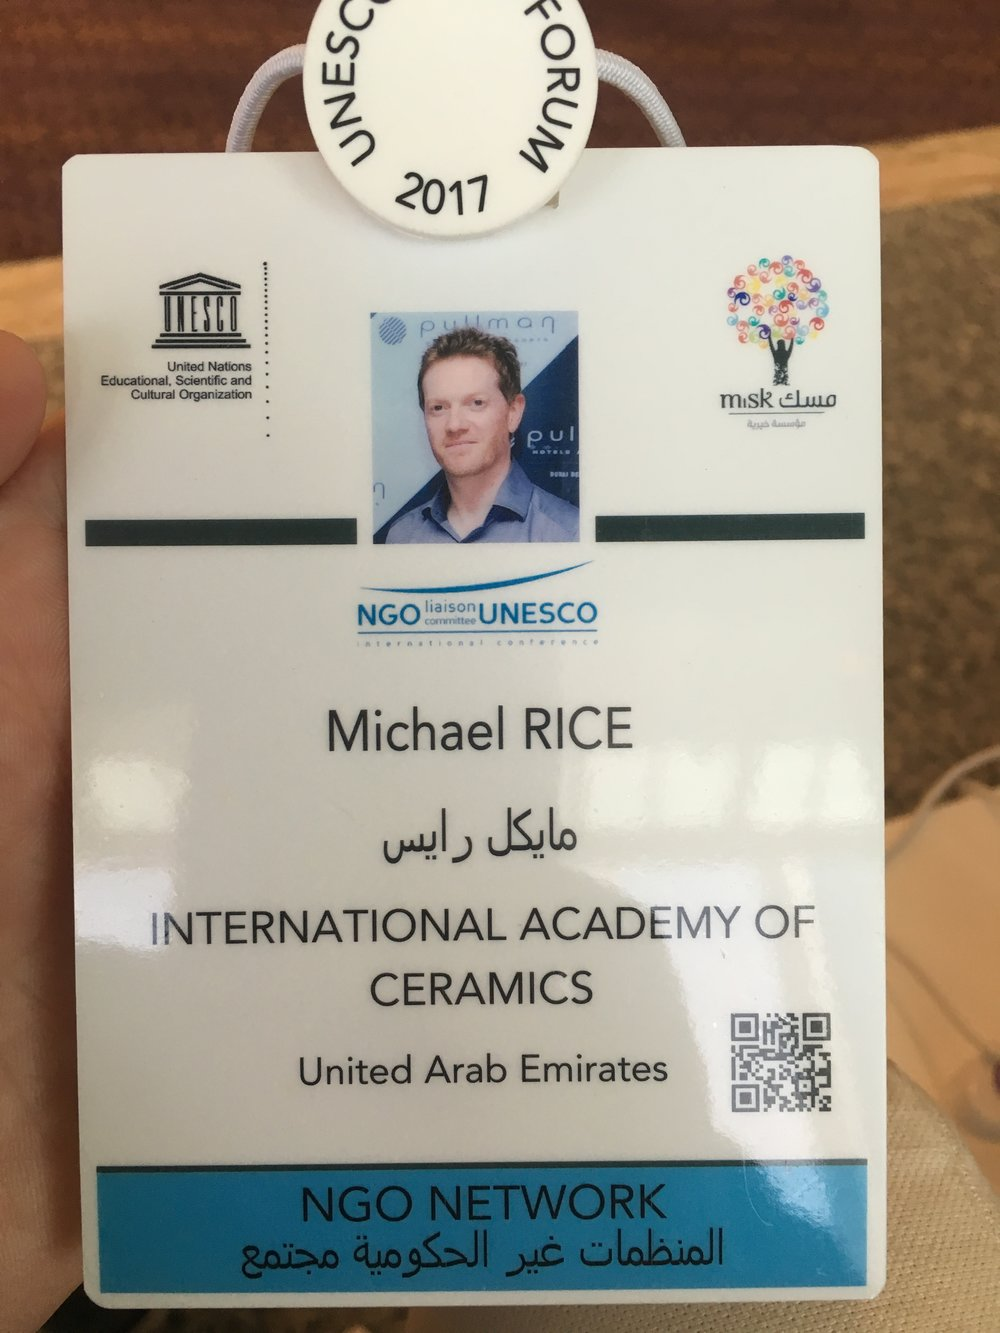 Attended the first NGO Forum in Saudi Arabia as representative of the International Academy of Ceramics in May 2017